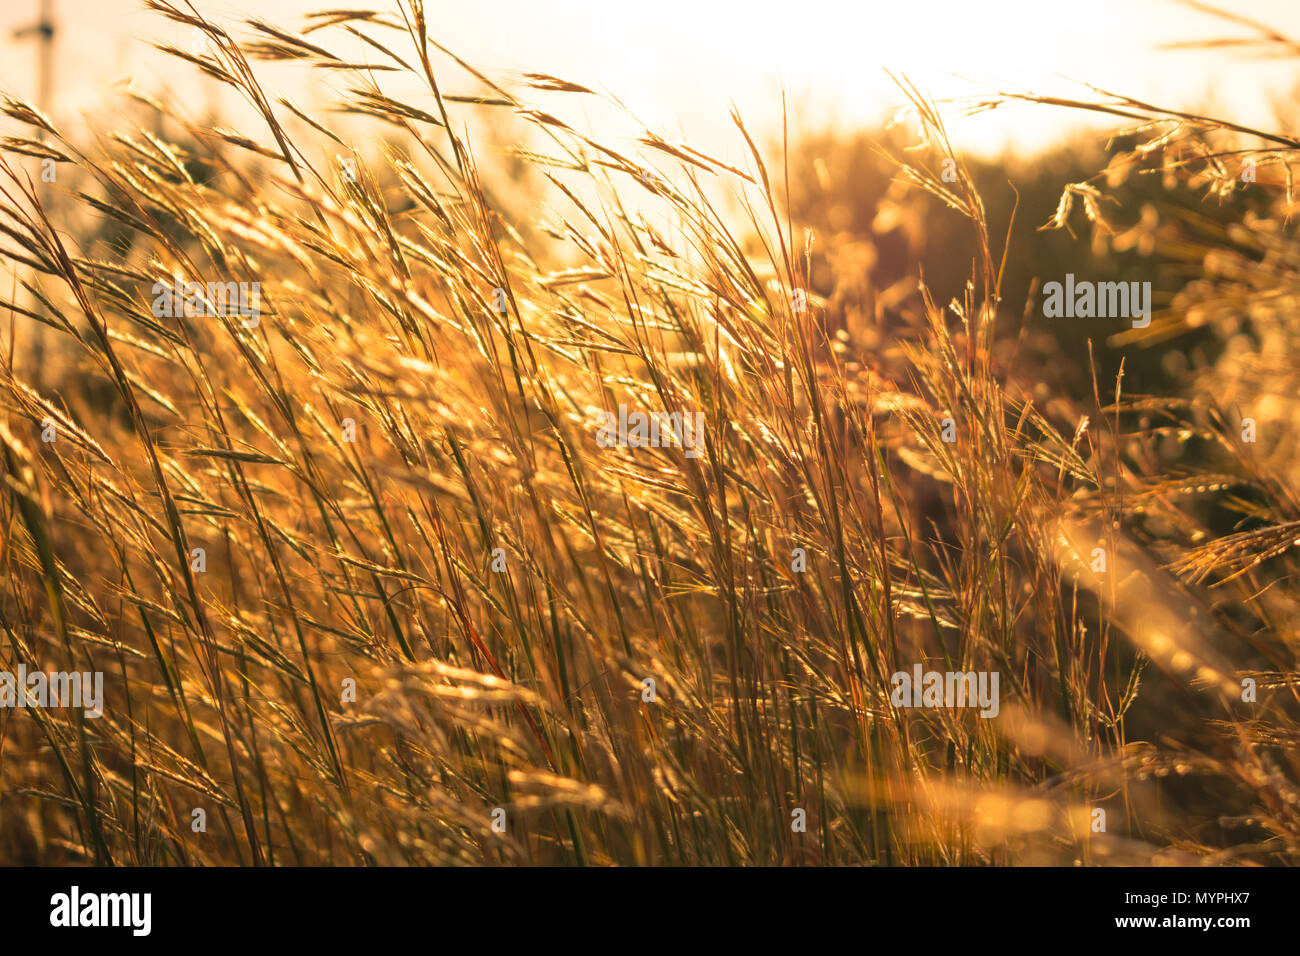 Bright golden color high grass with low depth of field background - Stock Image